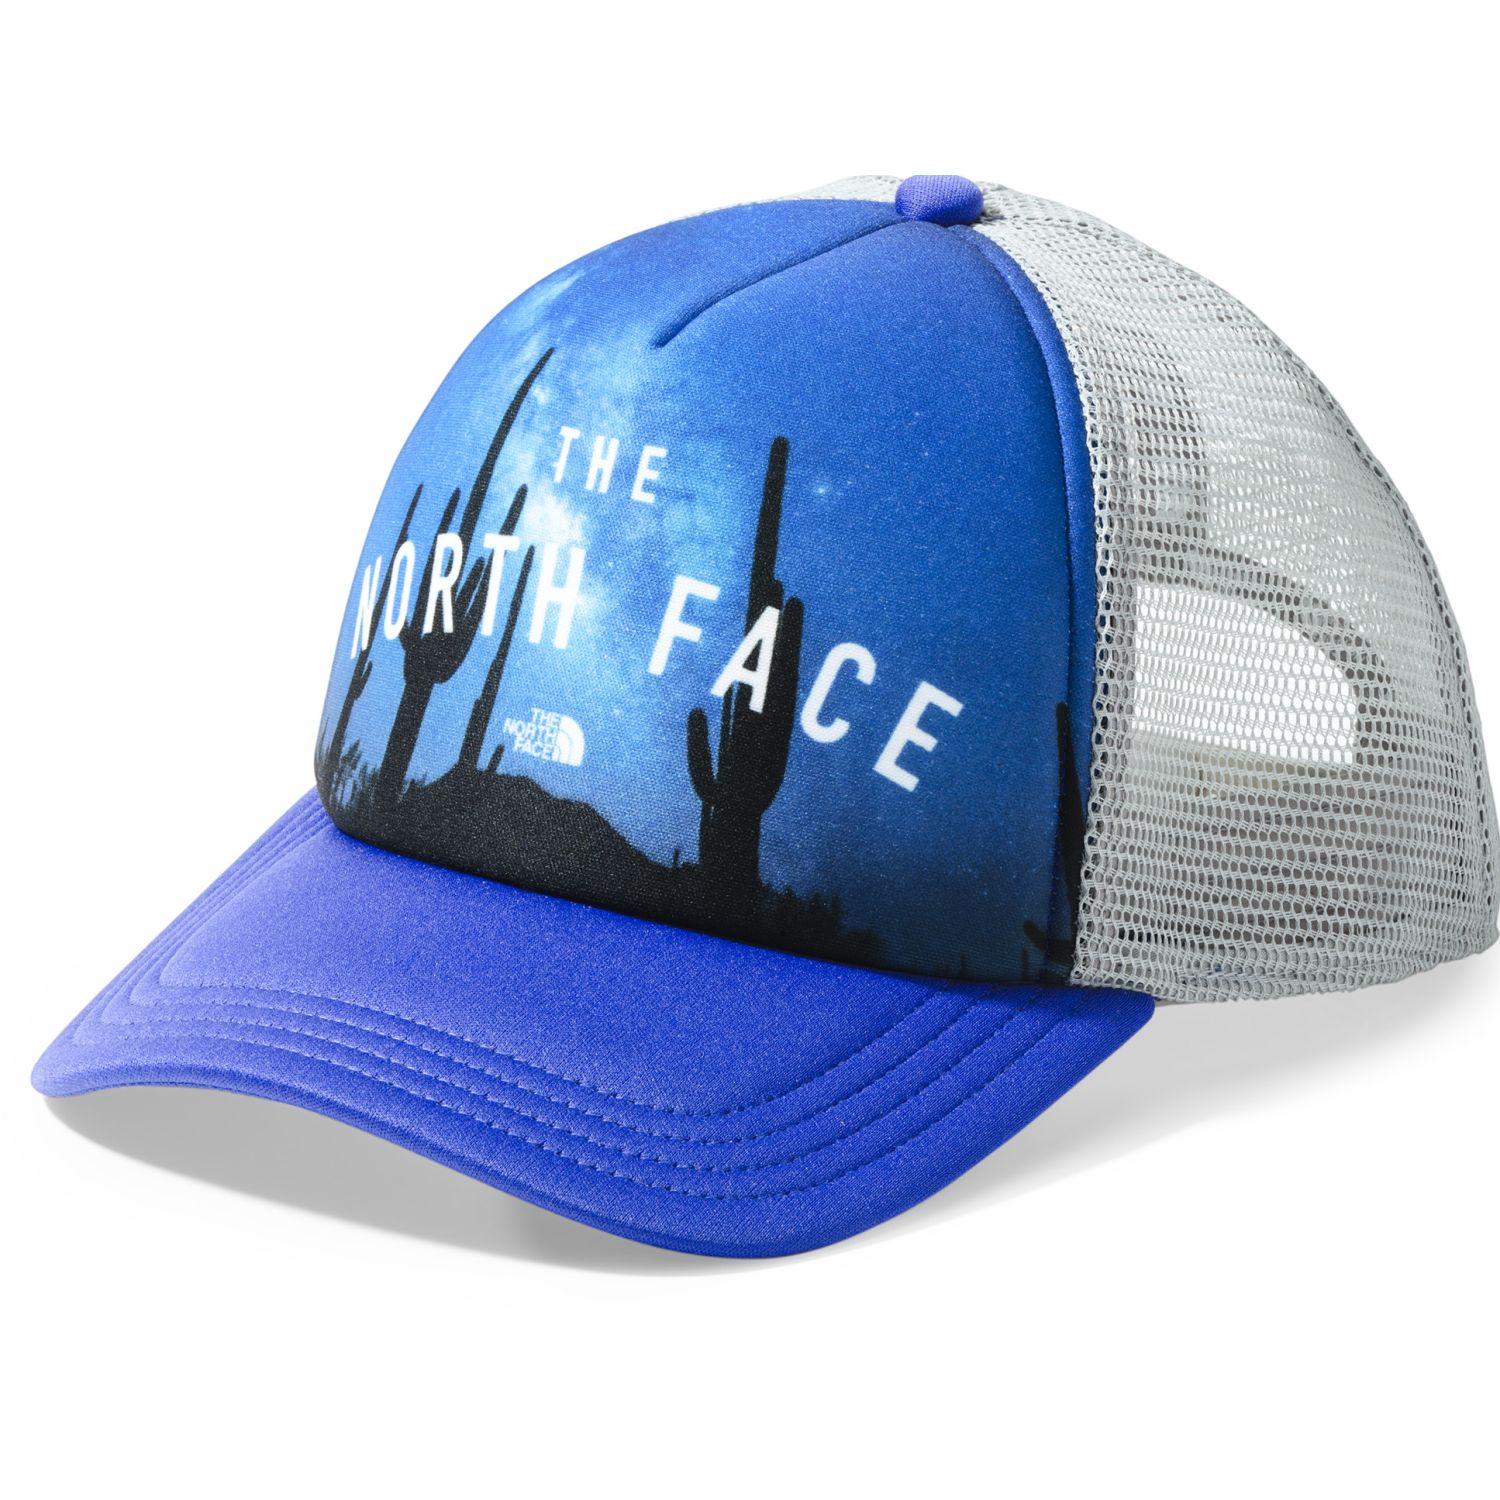 The North Face Photobomb Hat Azul Gorros de Baseball